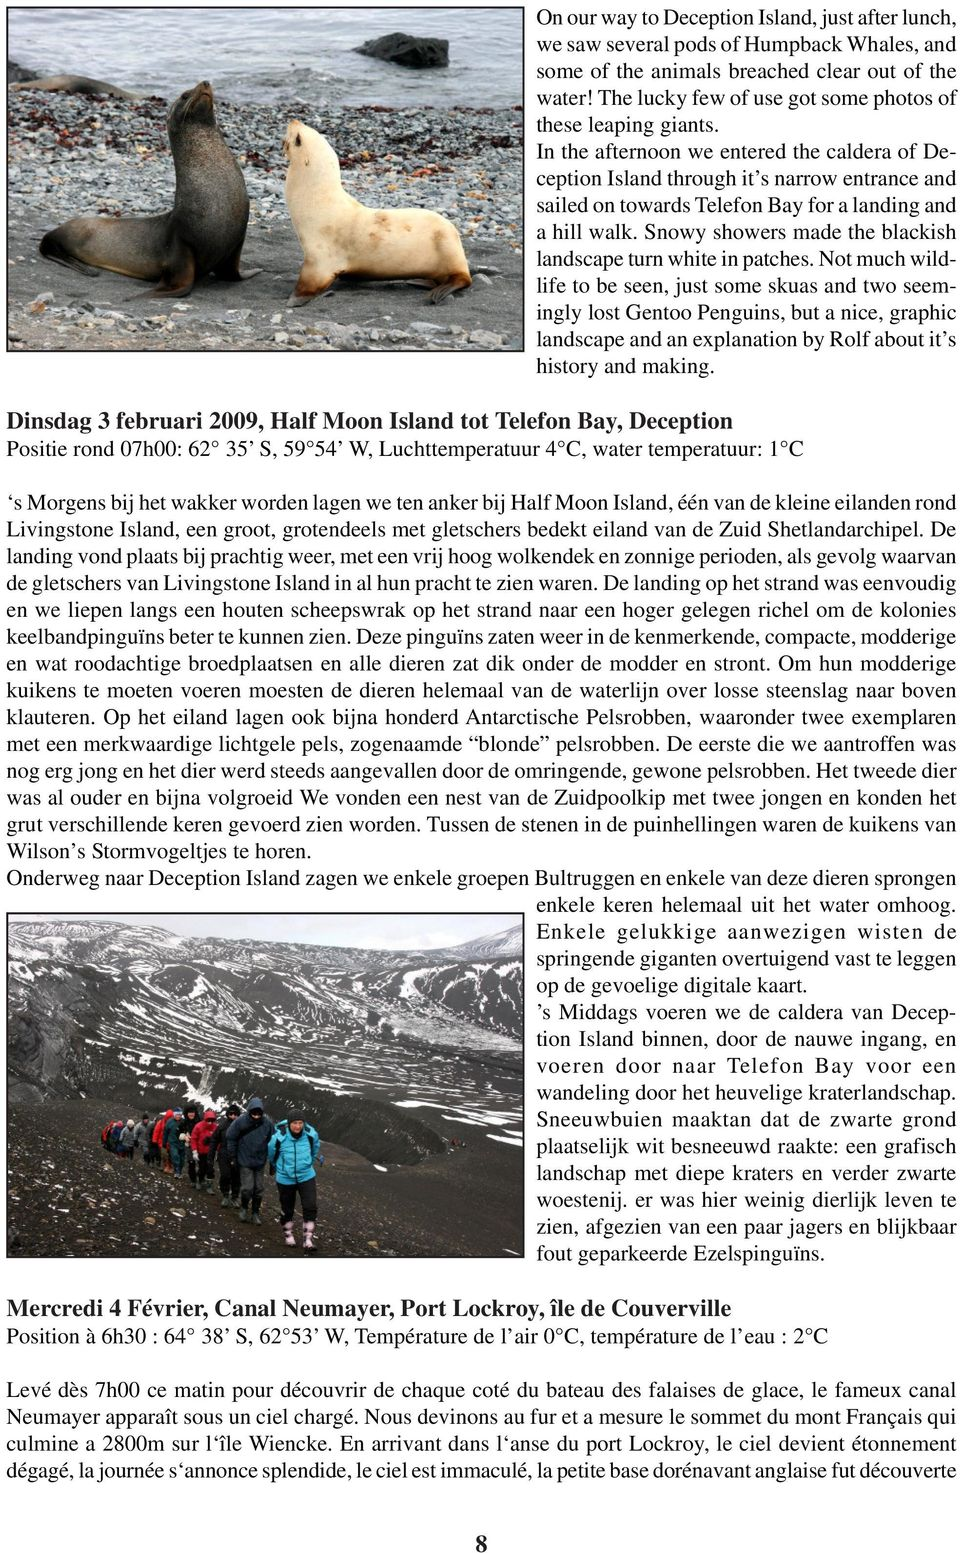 In the afternoon we entered the caldera of Deception Island through it s narrow entrance and sailed on towards Telefon Bay for a landing and a hill walk.